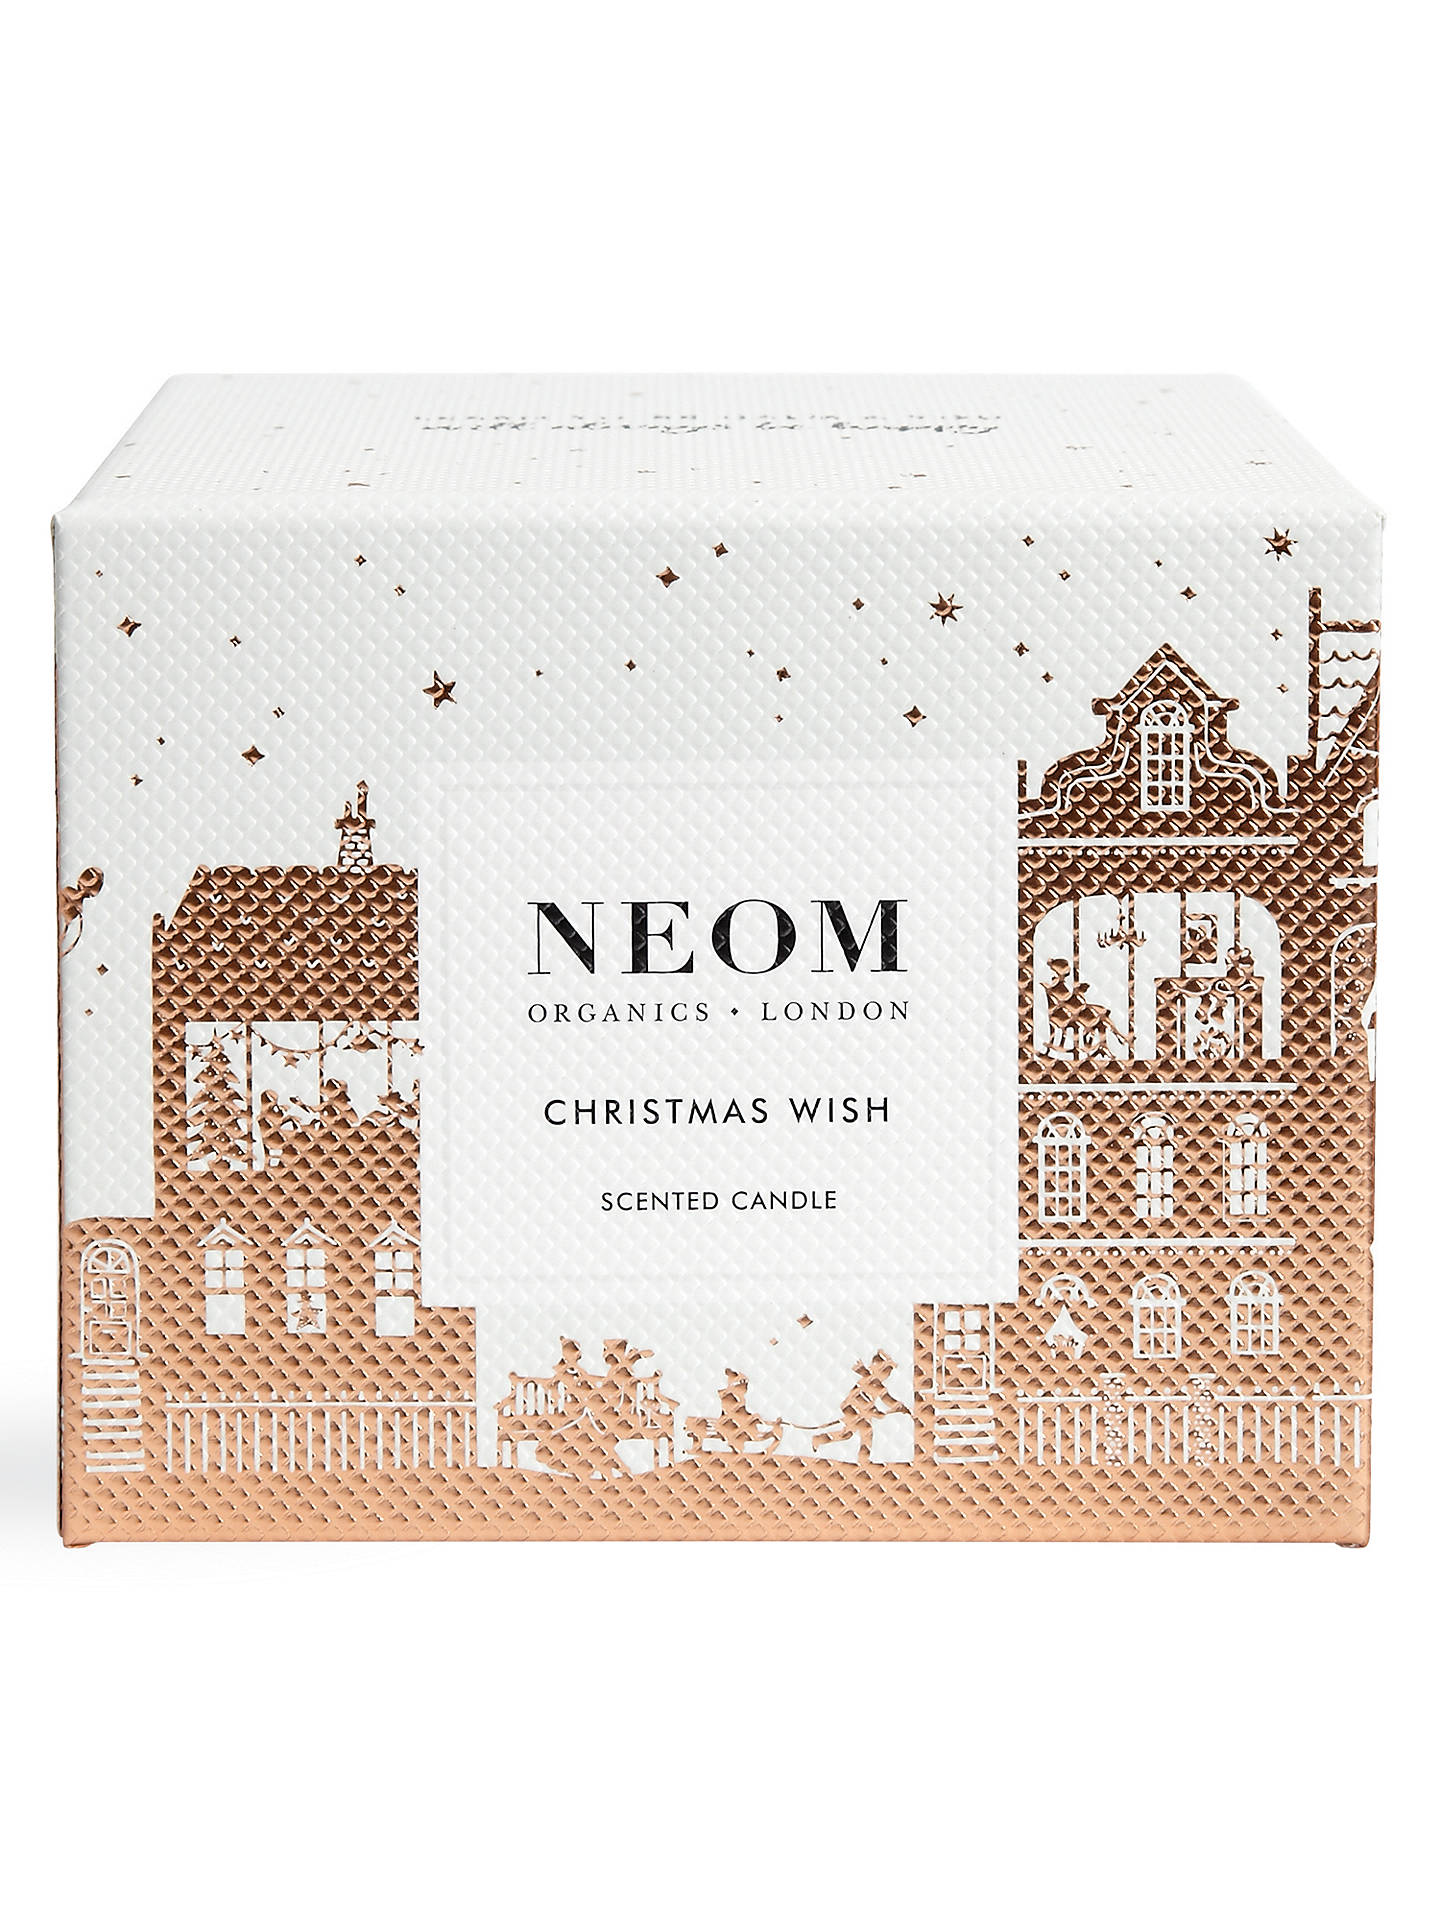 BuyNeom Christmas Wish 3 Wick Candle Online at johnlewis.com